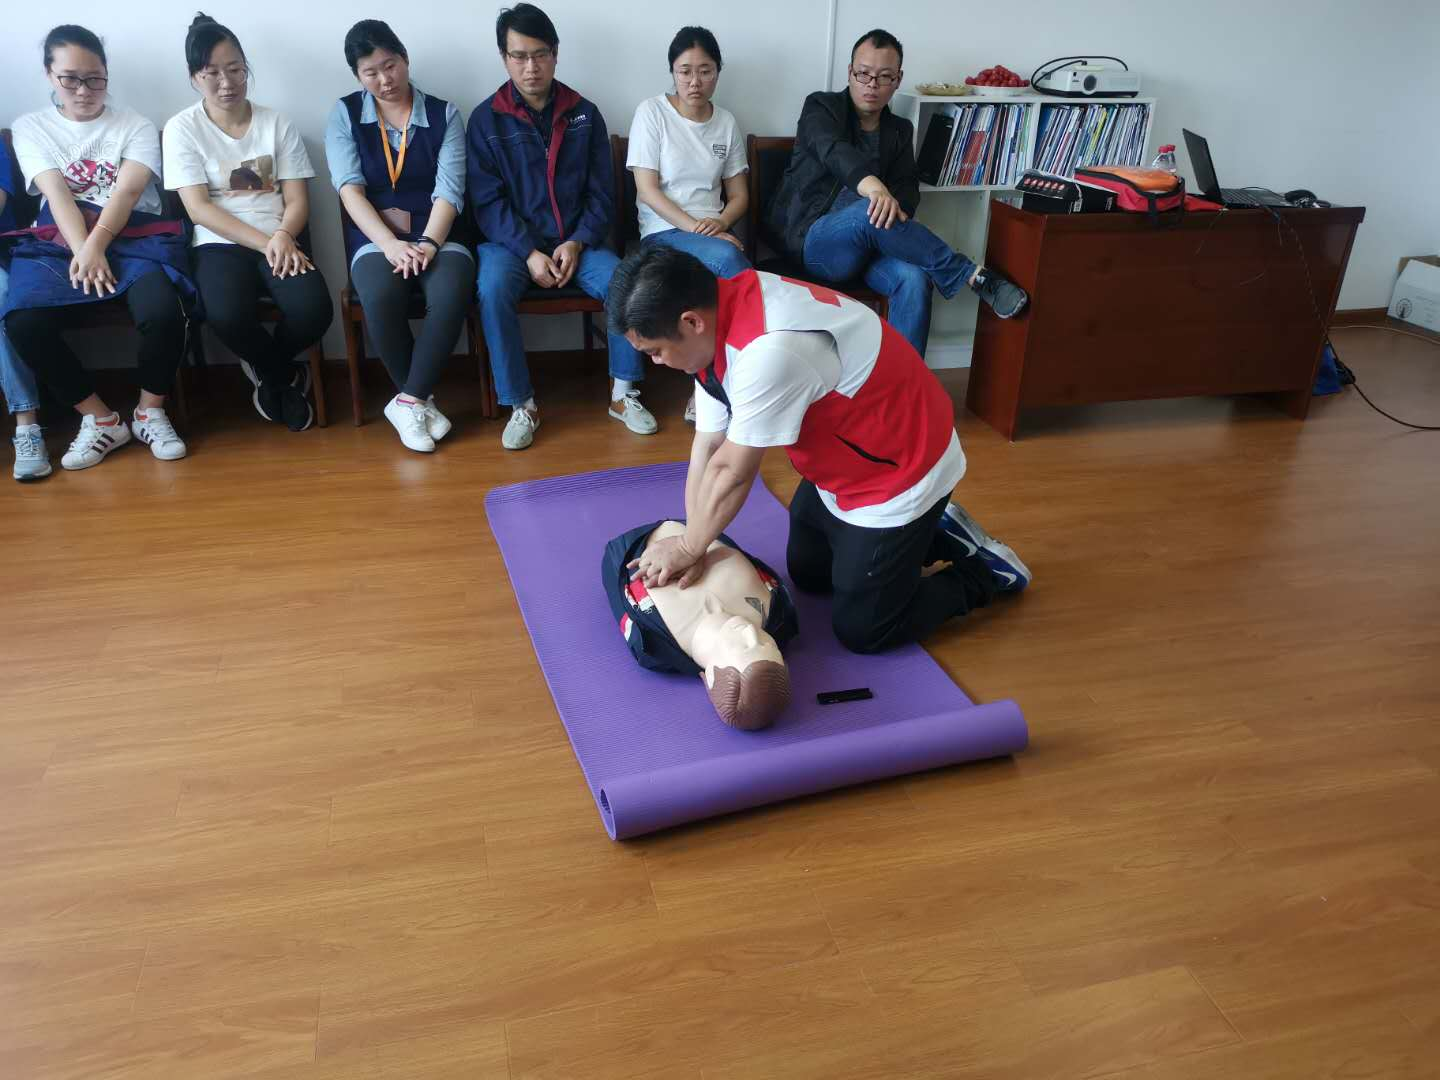 First aid knowledge training